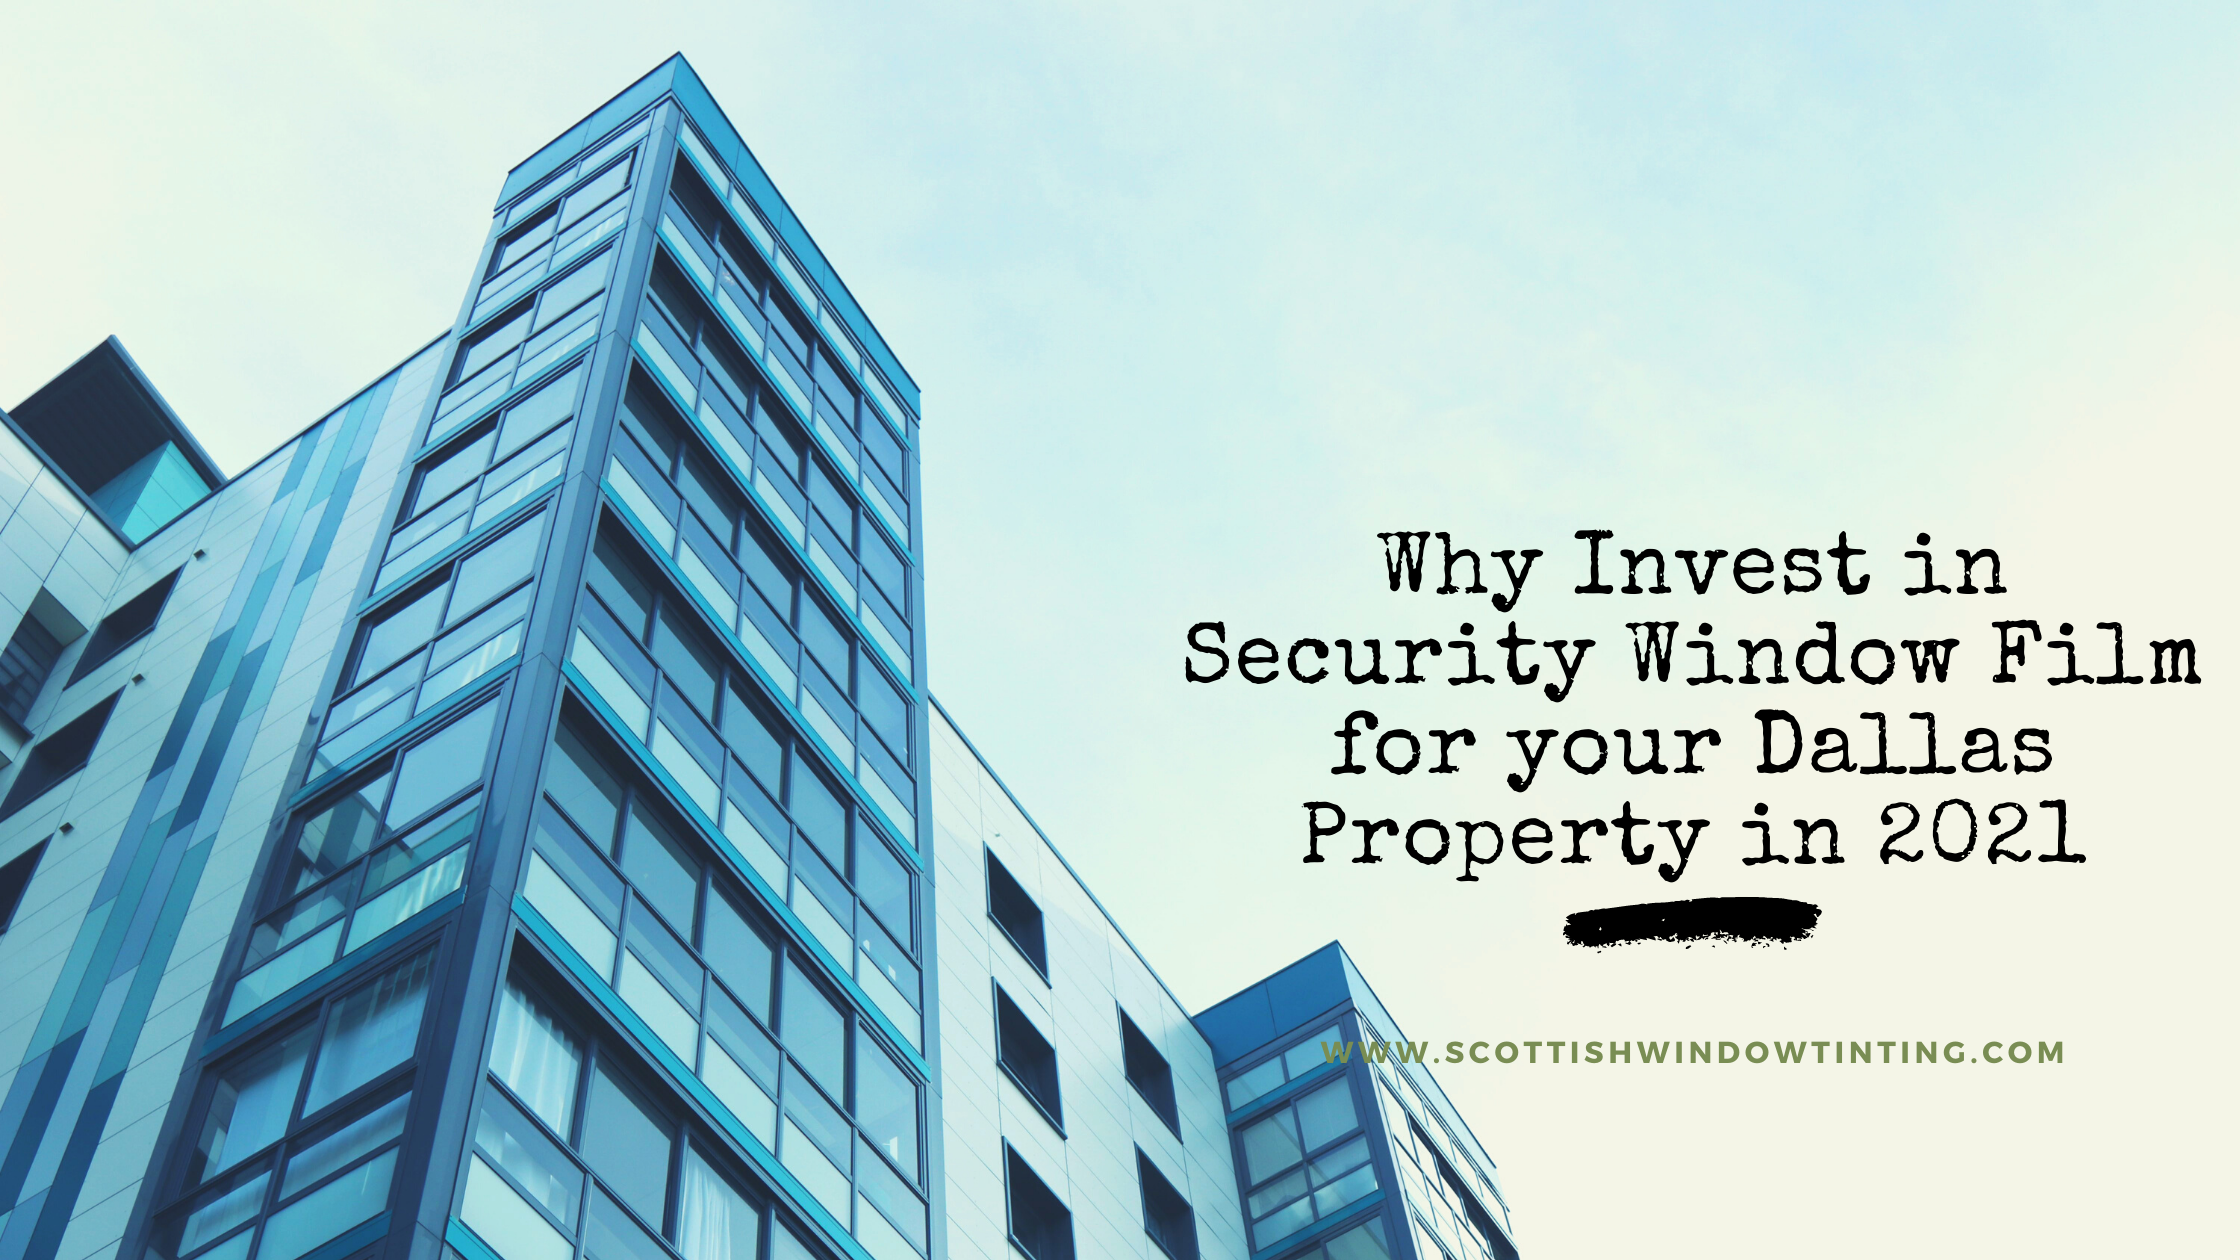 Why Invest in Security Window Film for your Dallas Property in 2021